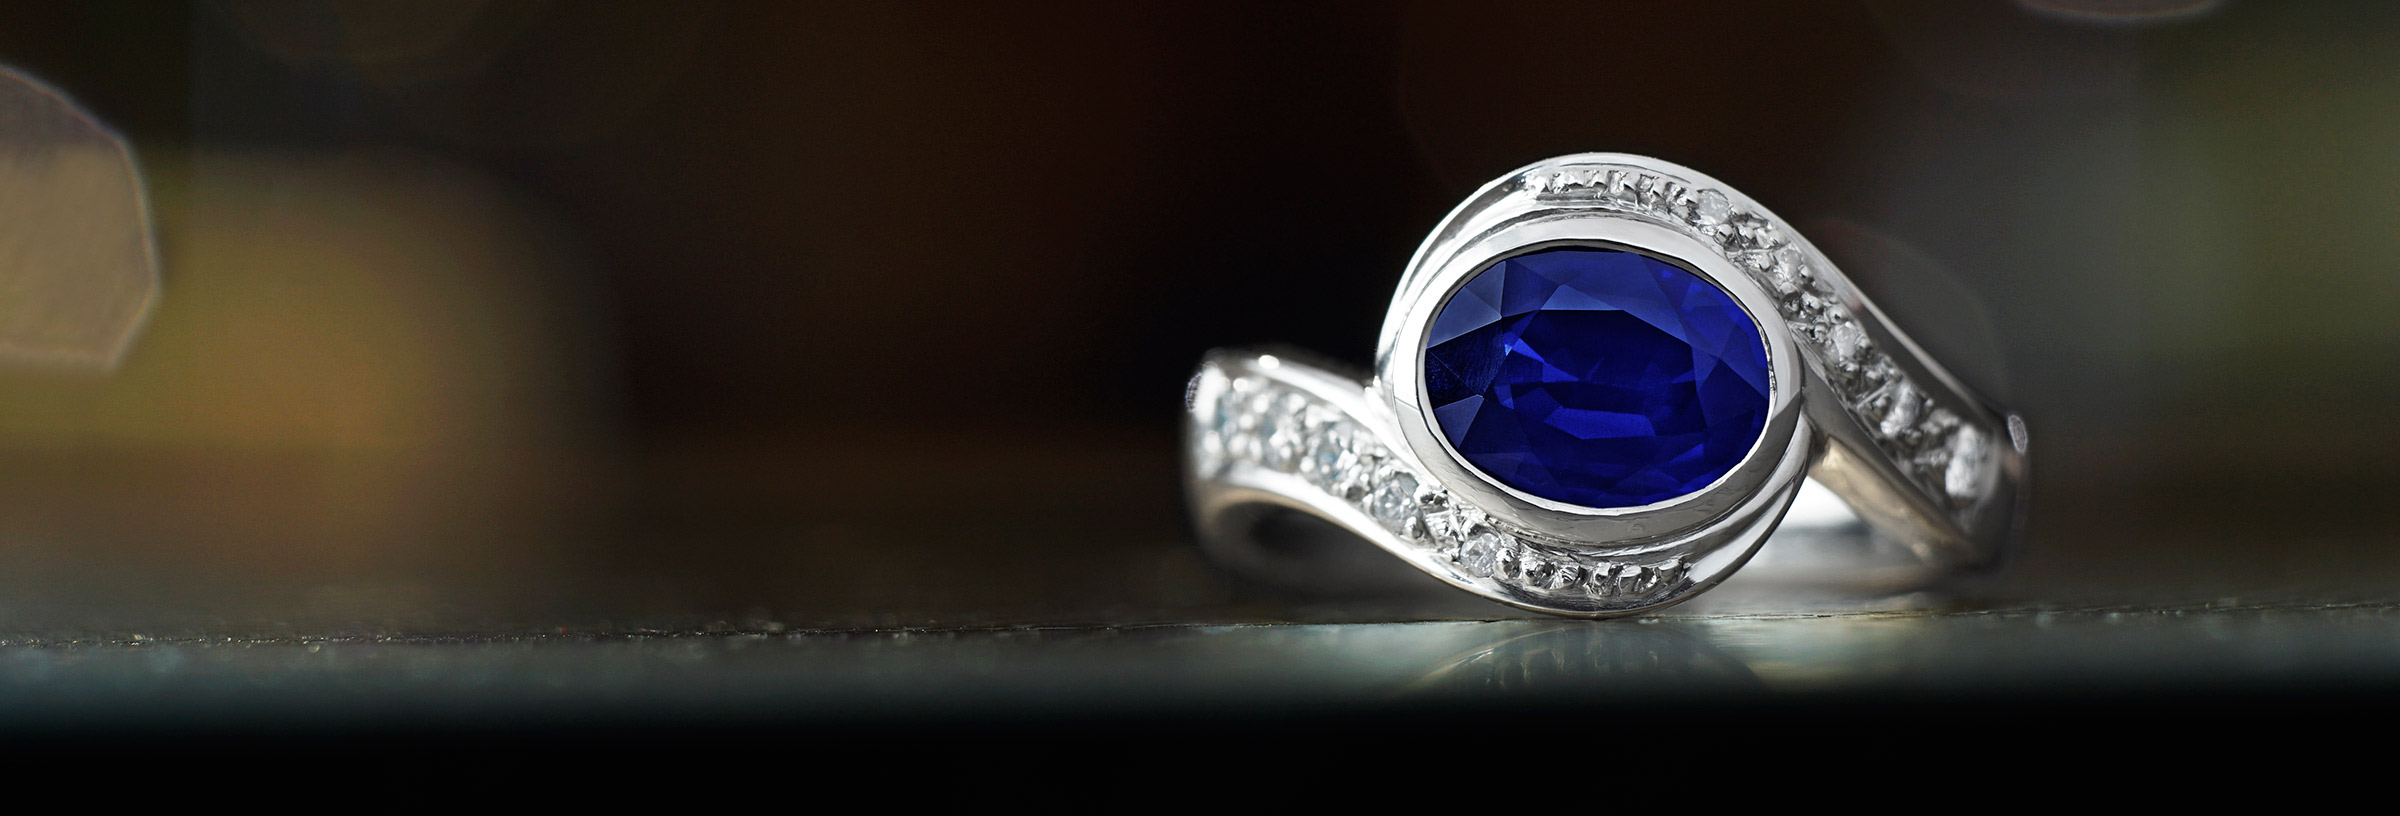 Twist style 1.44ct sapphire and pave set diamond ring